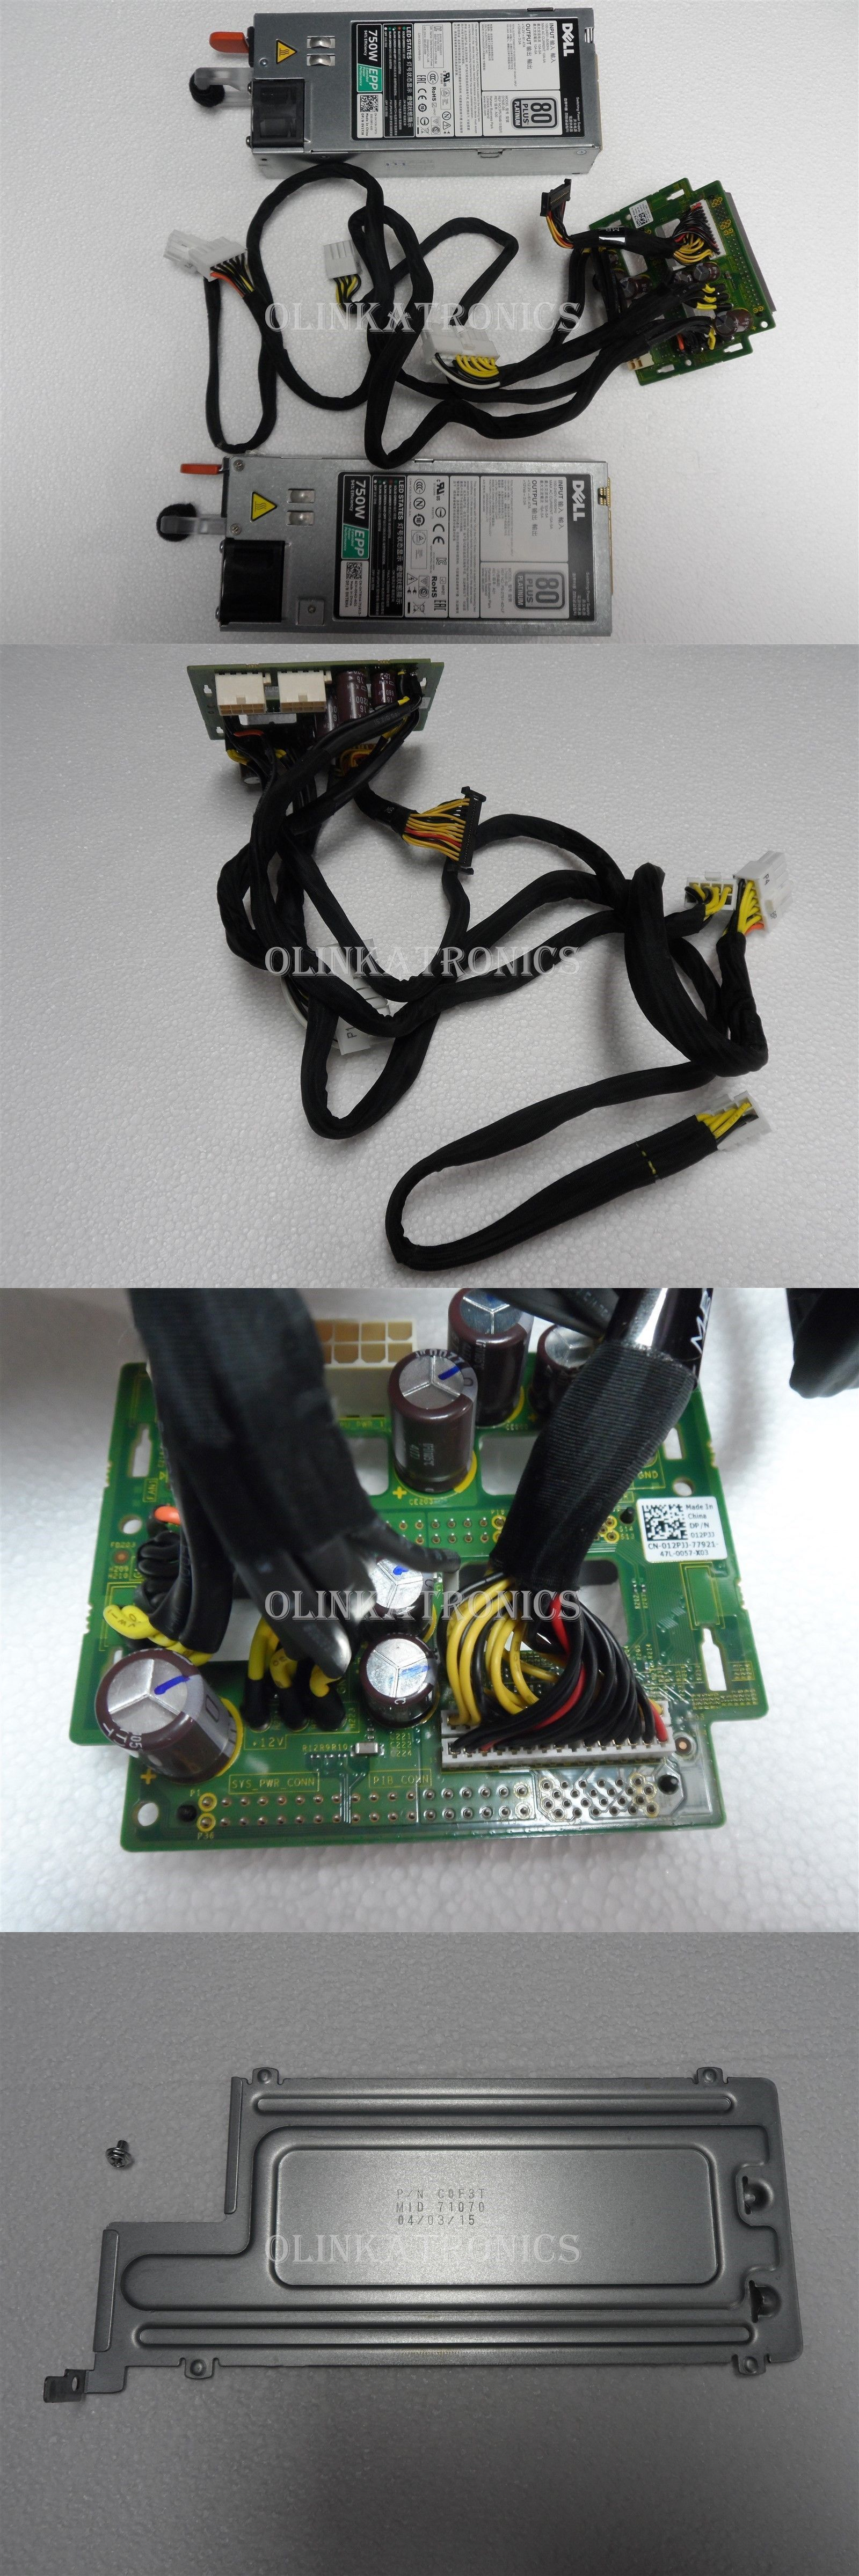 Dell Dual Hot Swap Power Supply 750w Distribution Board Poweredge Server T430 Distribution Board Power Supply Server